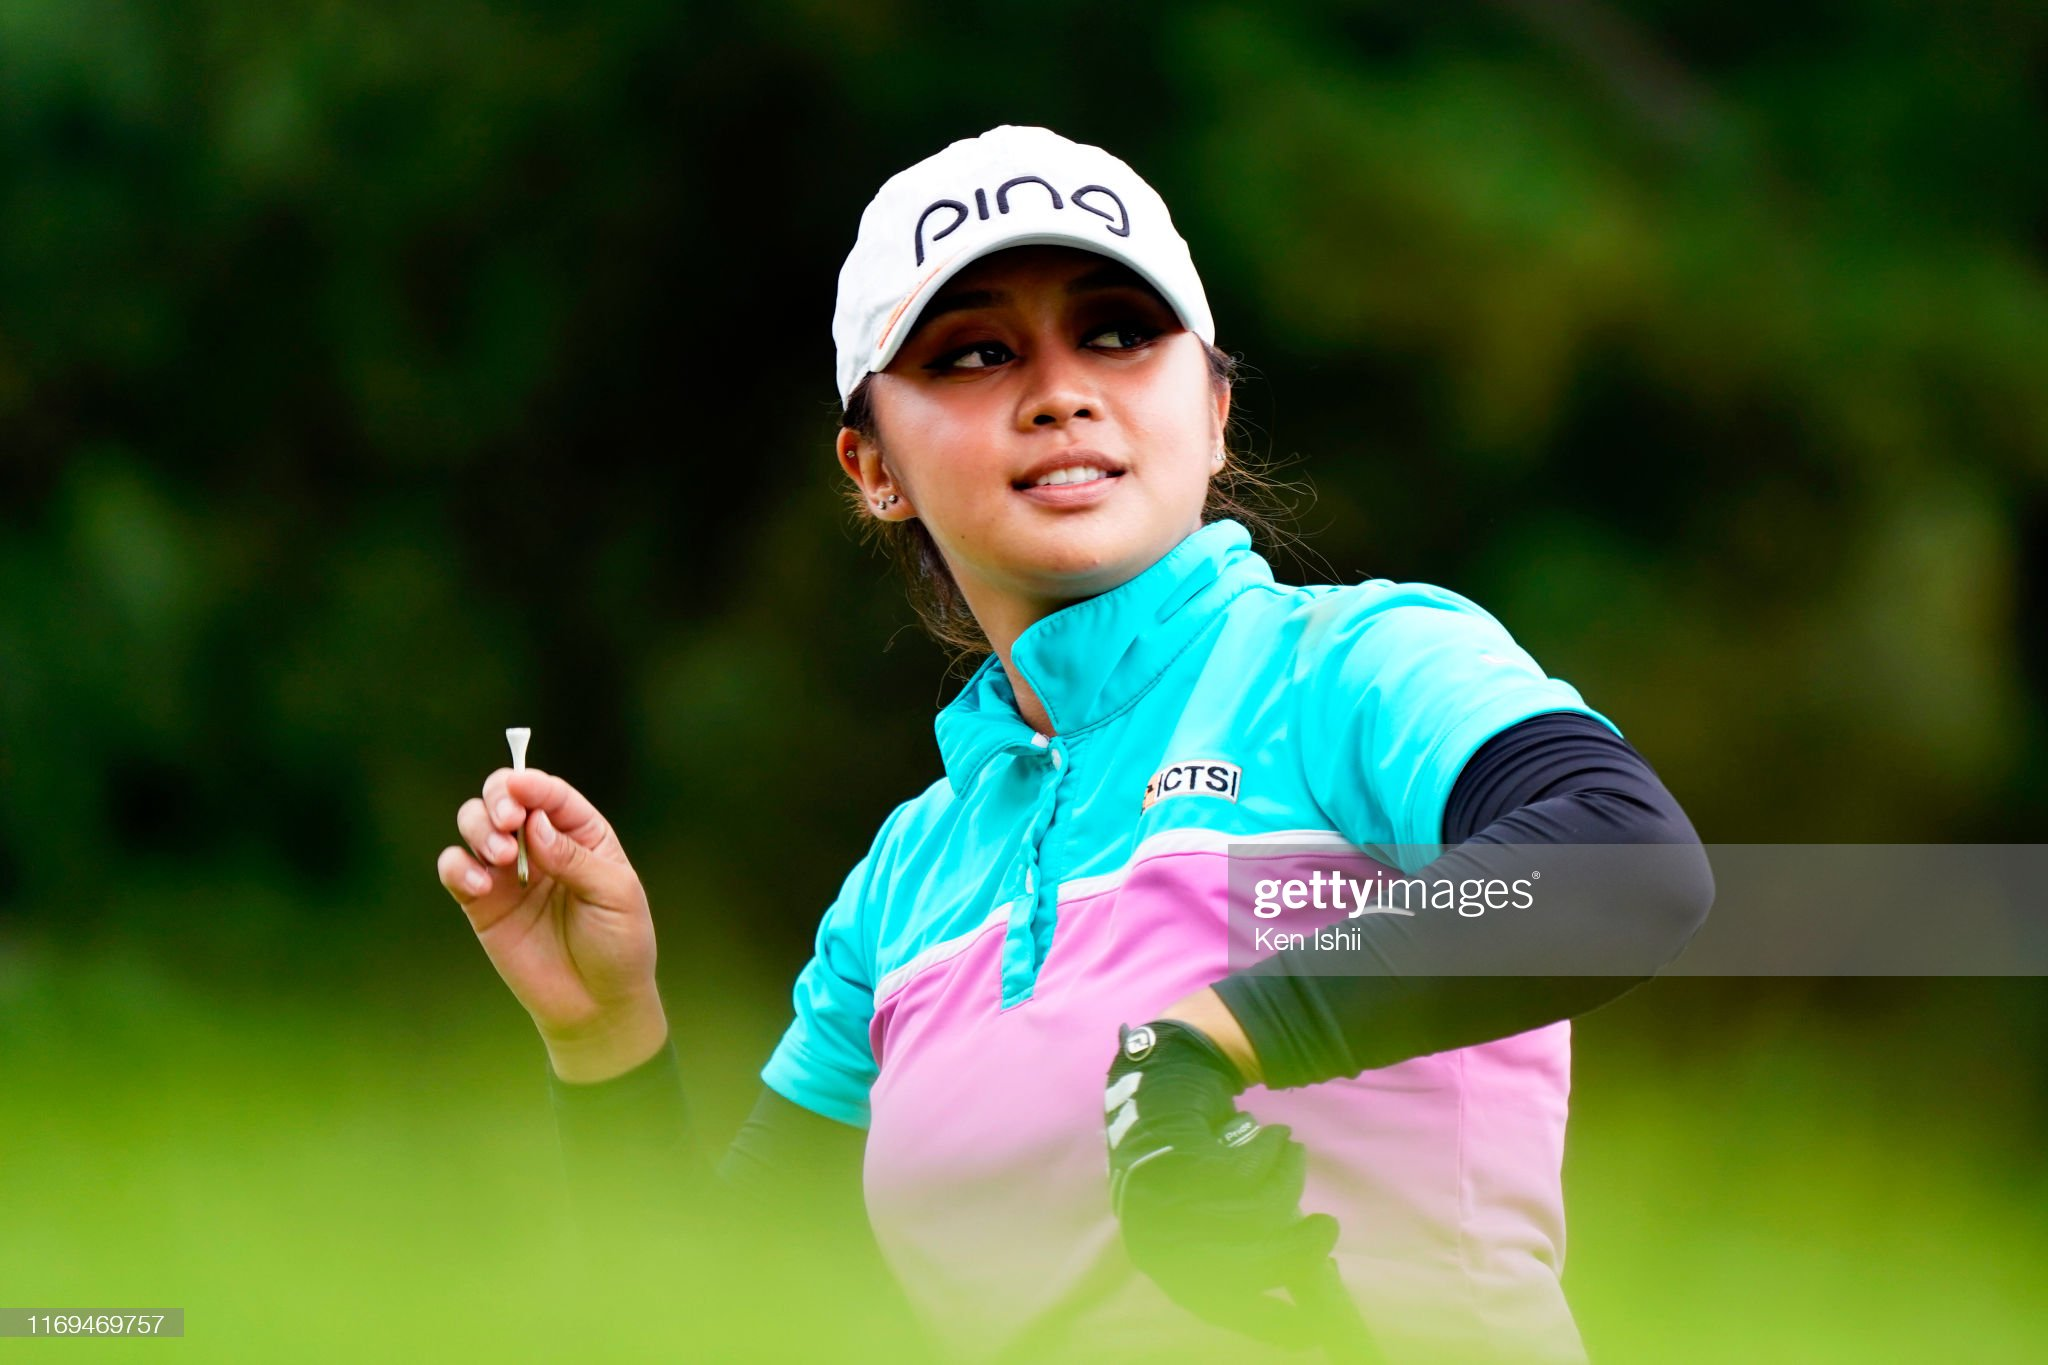 https://media.gettyimages.com/photos/princess-superal-of-the-philippines-reacts-after-her-tee-shot-on-the-picture-id1169469757?s=2048x2048